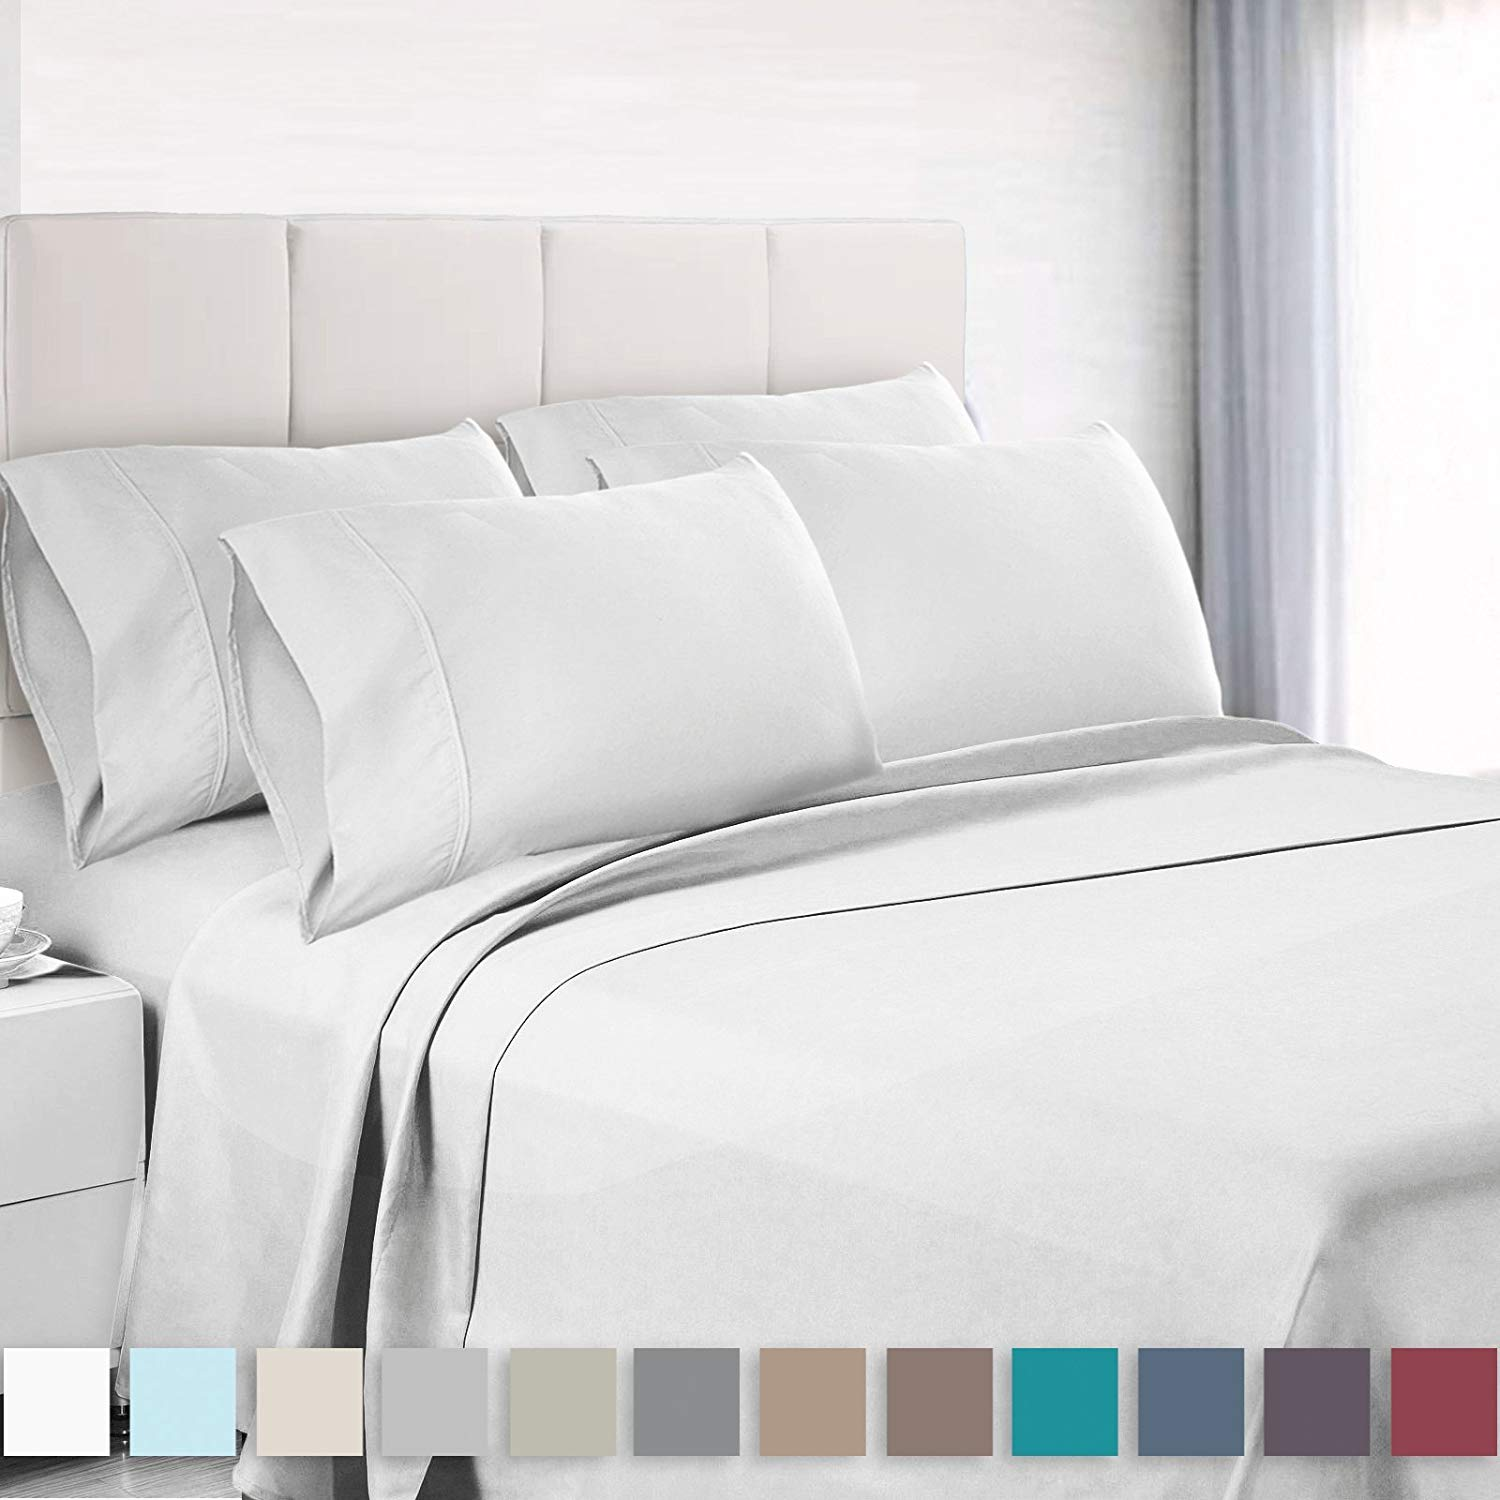 Solid Silk Wrap Around Fitted Sheet Cover Double//Queen//King Size Bedding Soft